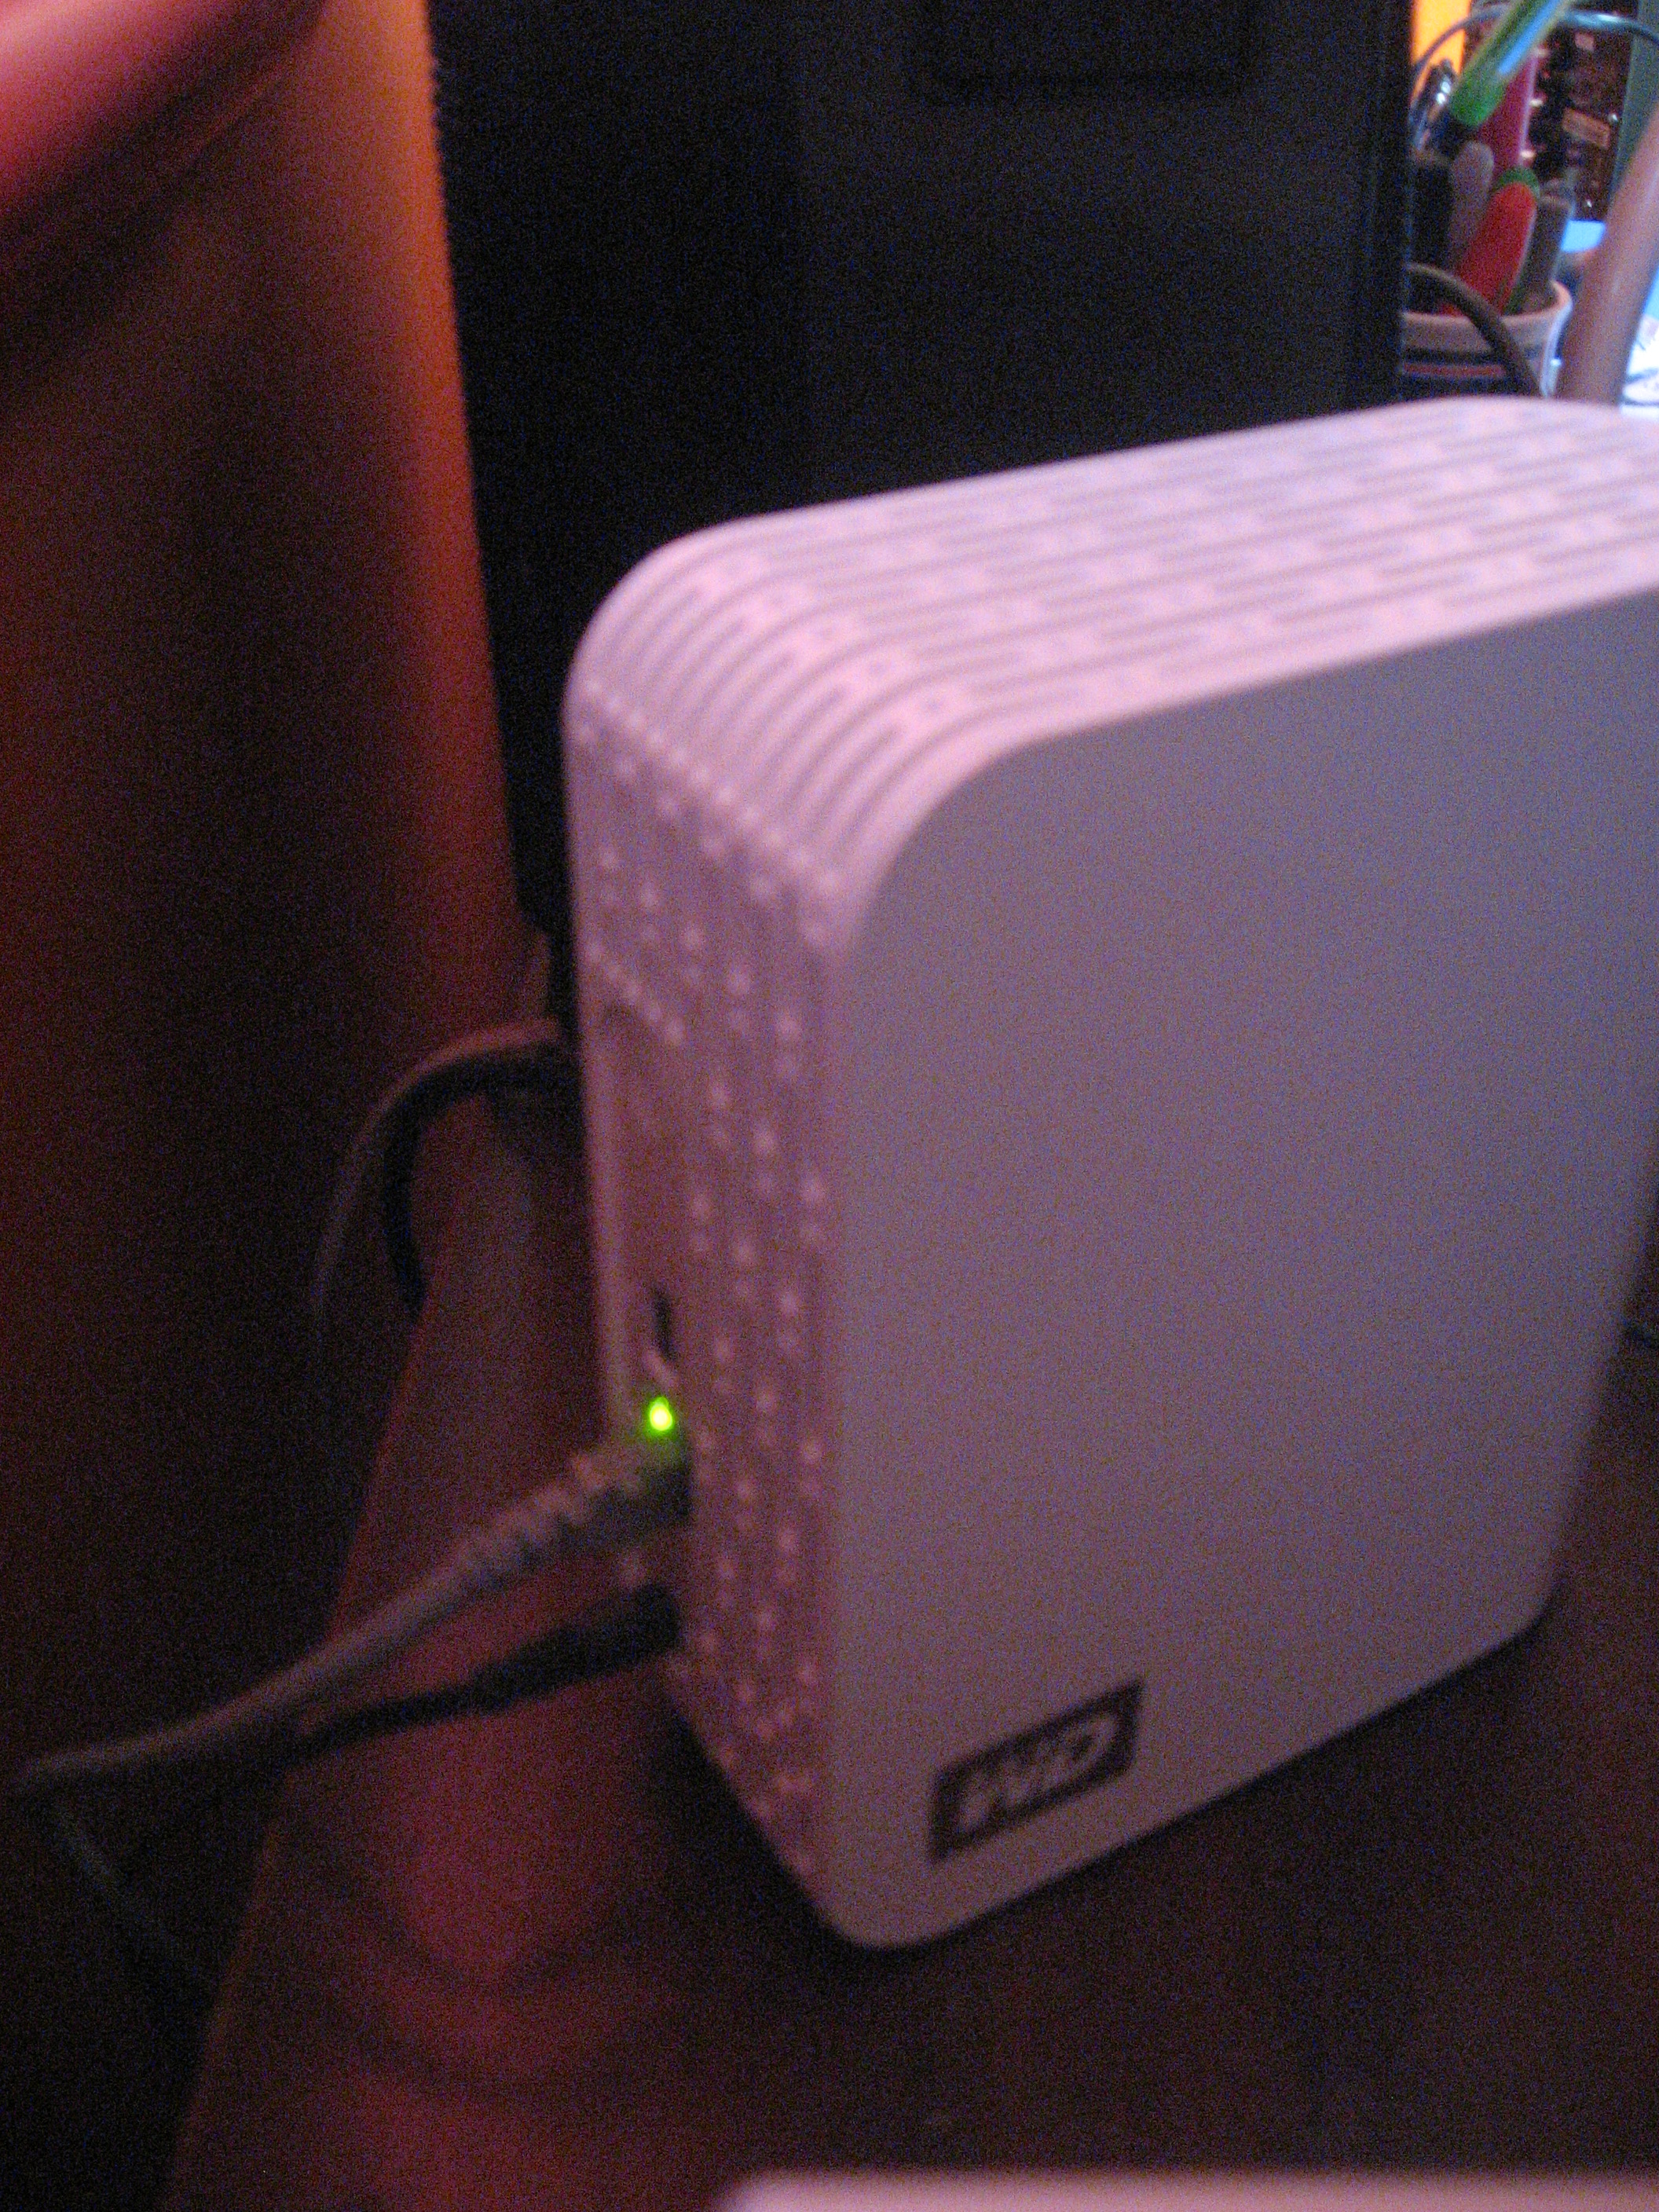 Ethernet connection to the NAS